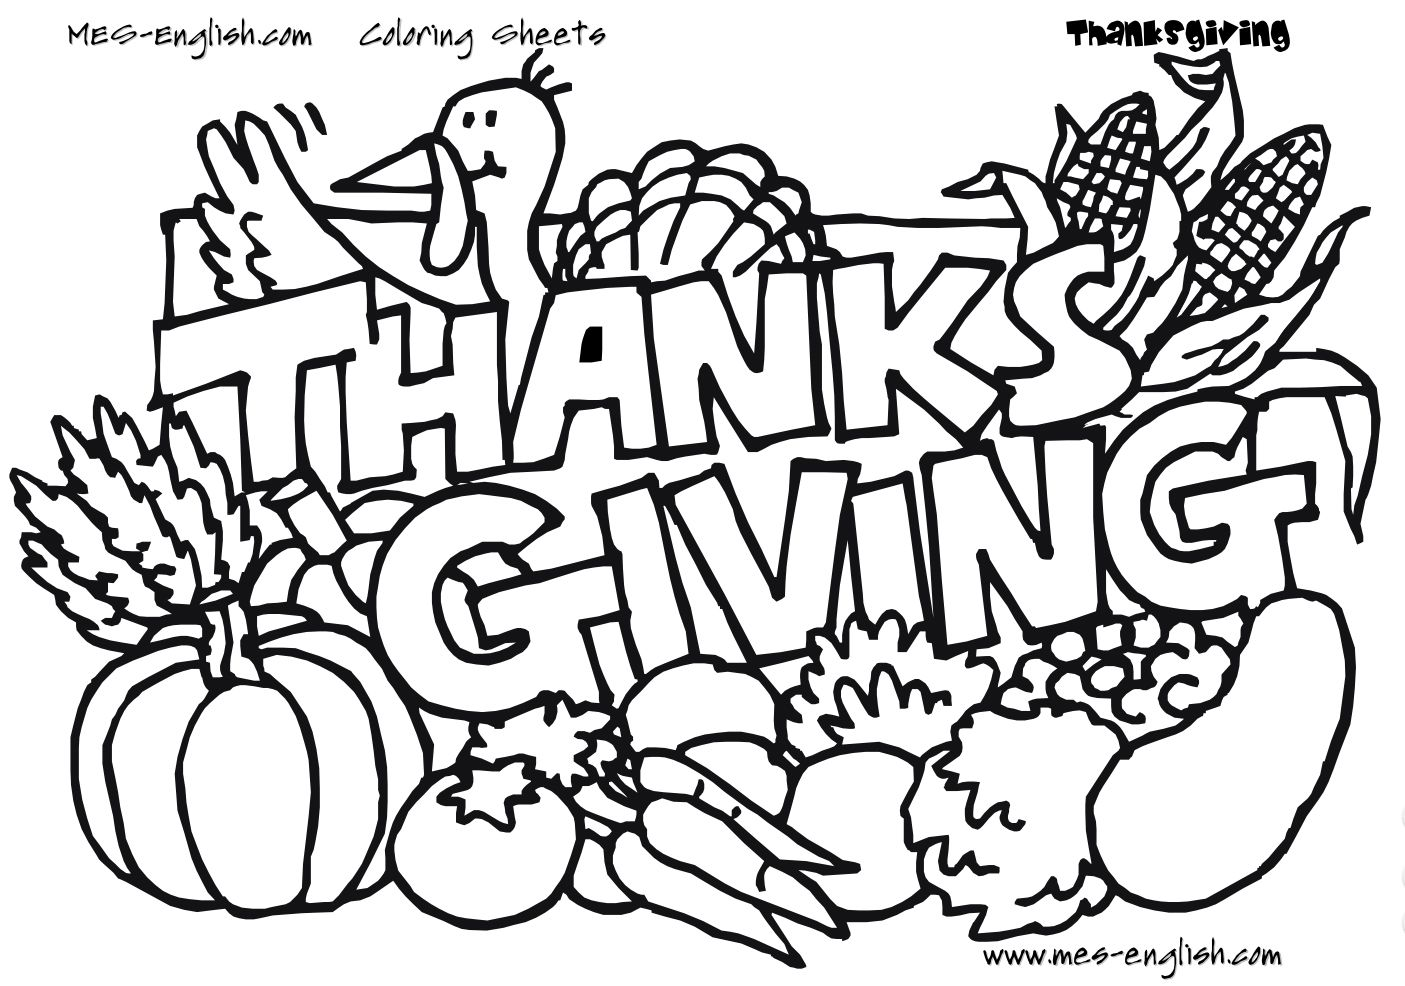 Uncategorized Black And White Coloring Pictures 217 thanksgiving coloring pages for kids